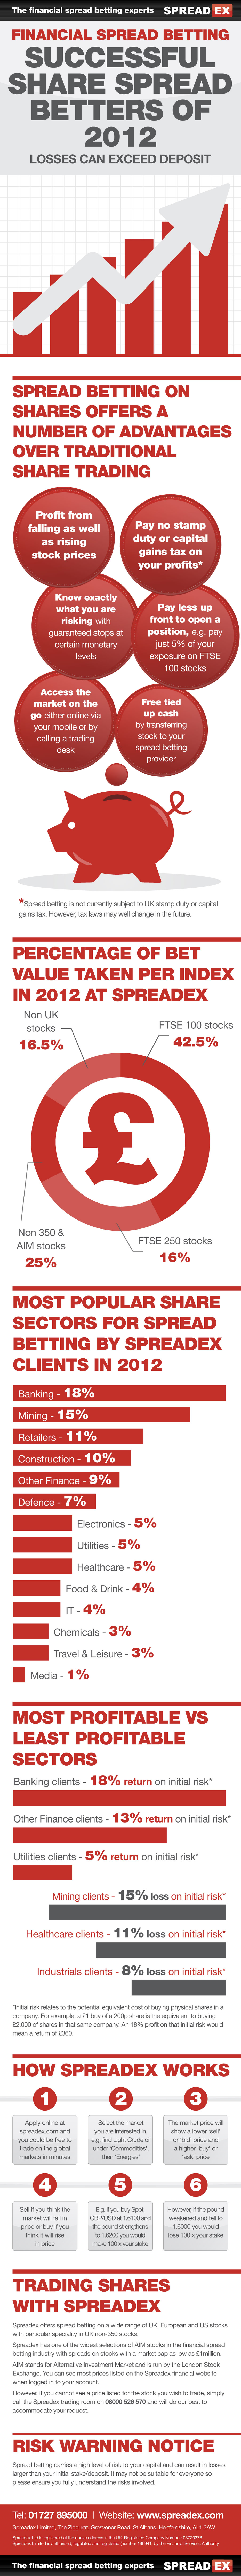 Spreadex_Successful_Betters_Infographic-jan-13